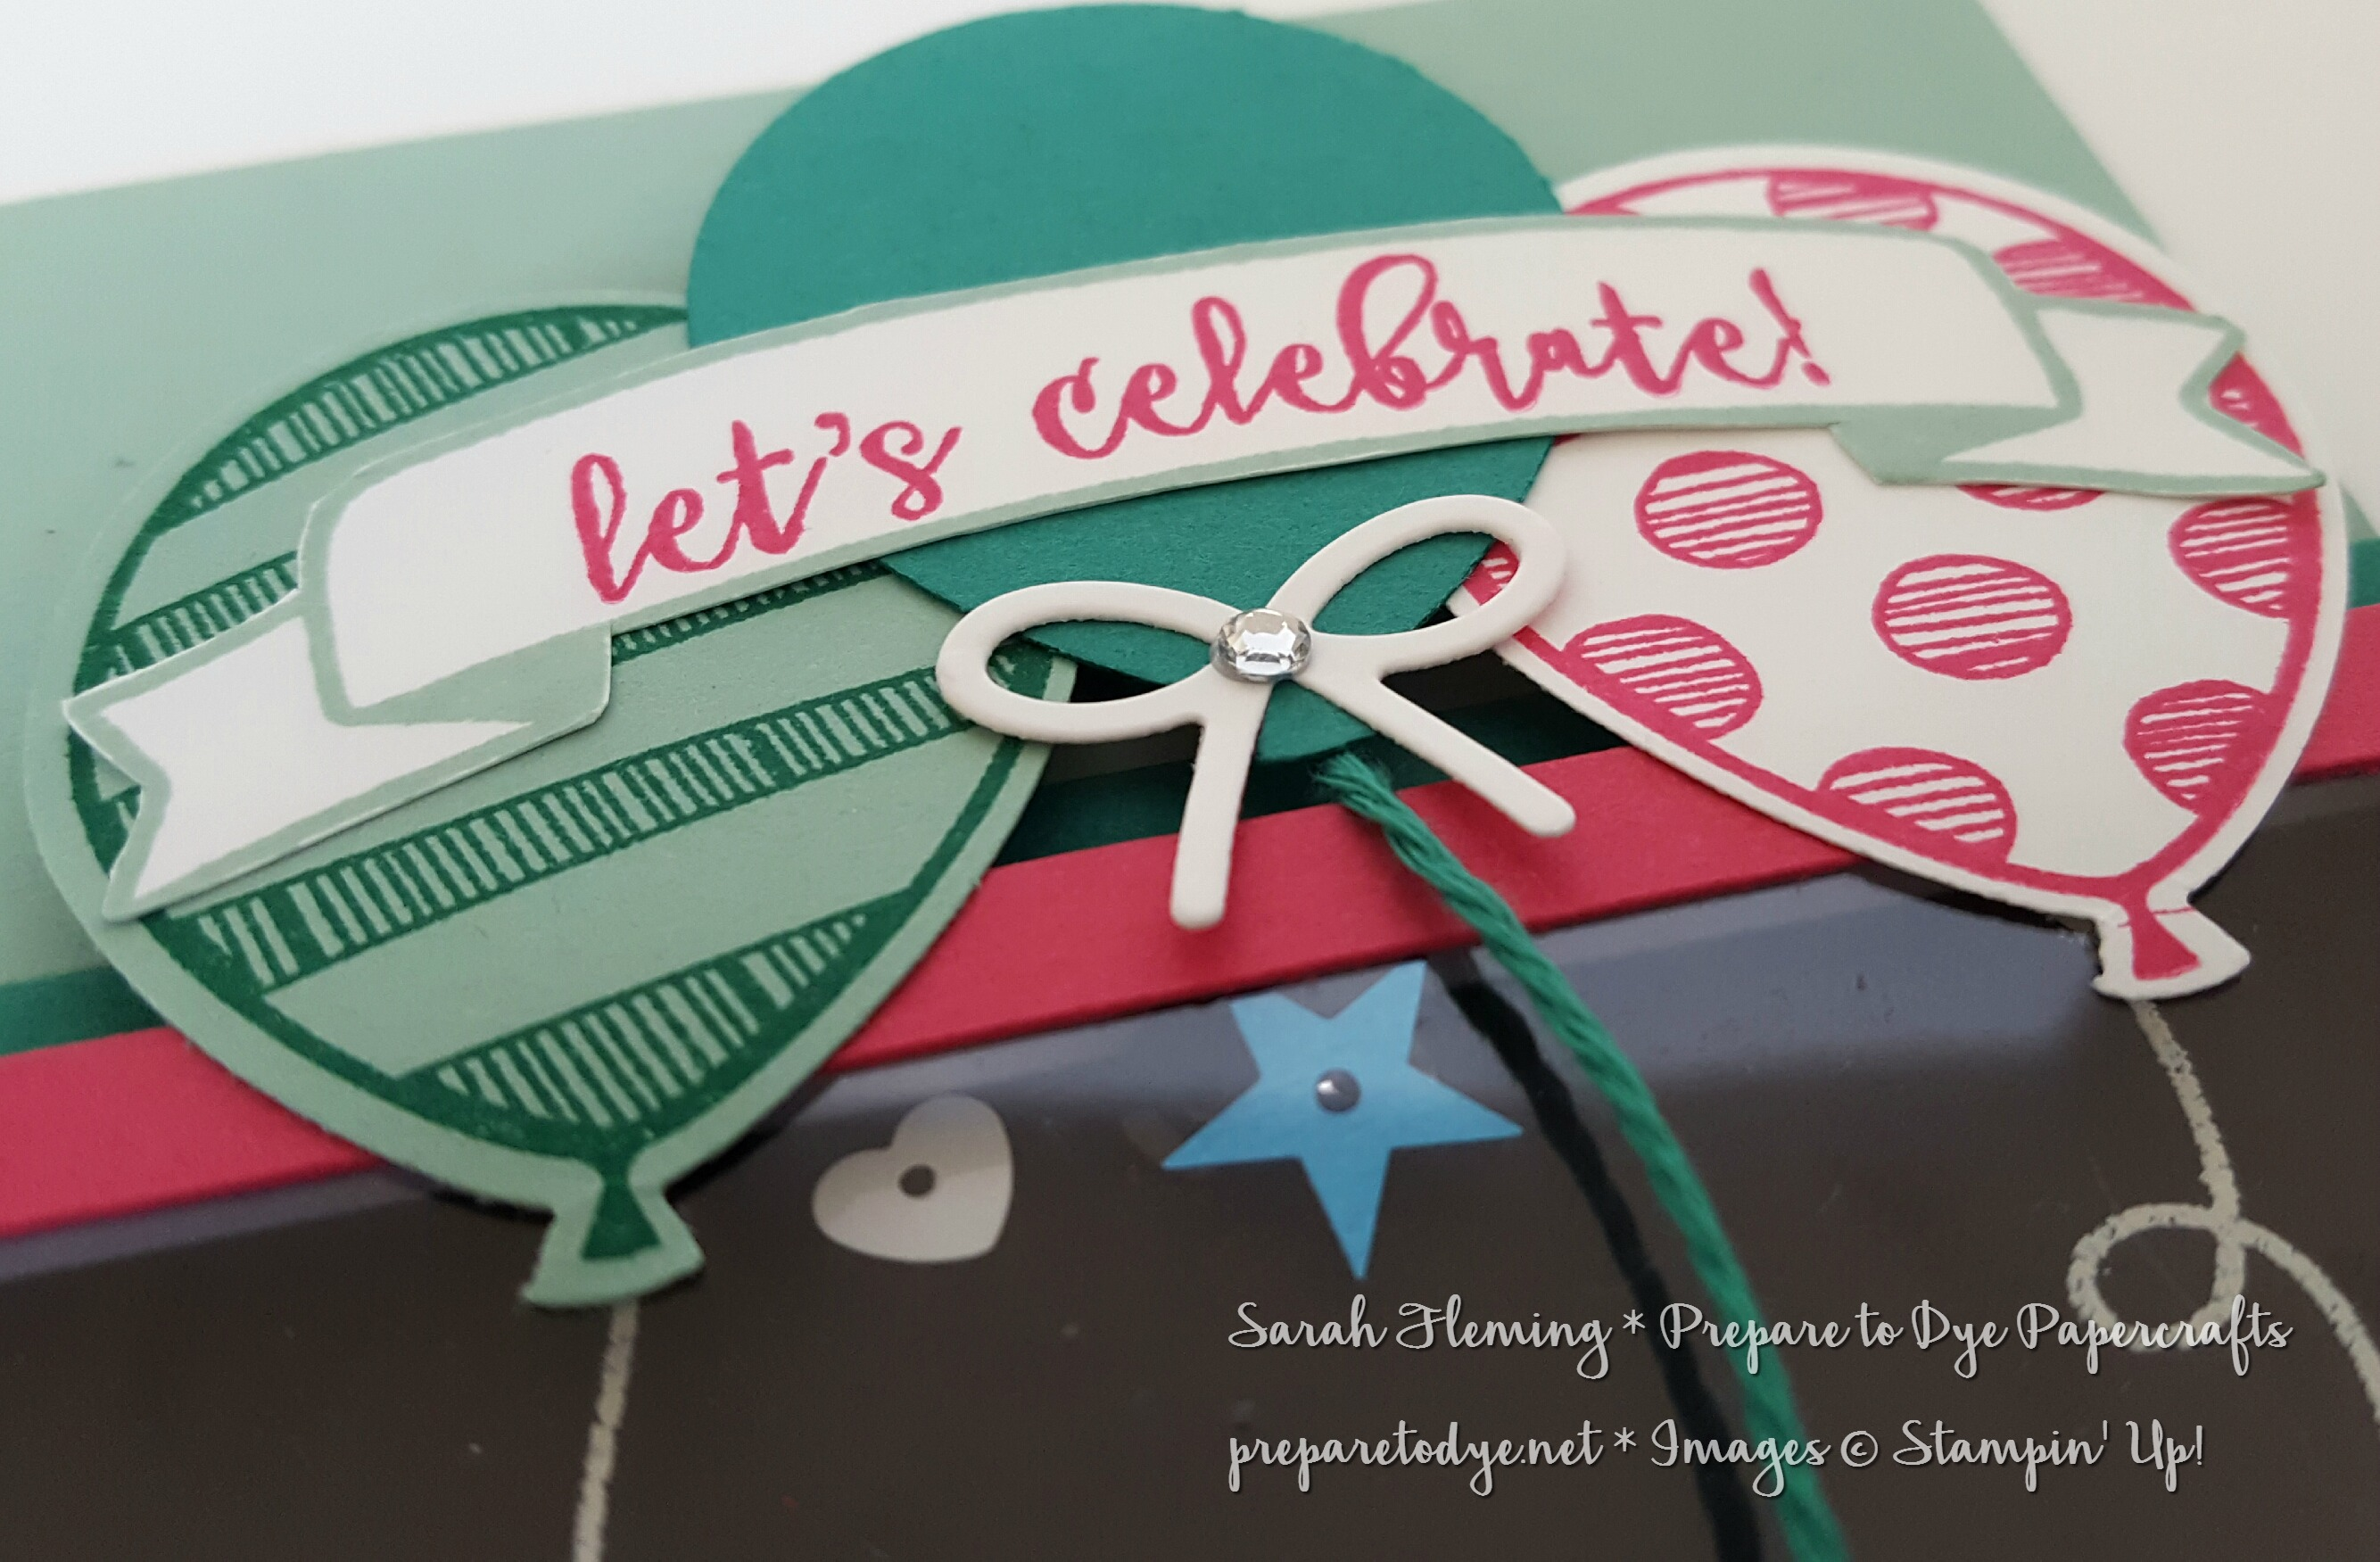 Stampin' Up! Balloon Adventures shaker card for Global Design Project 70 - #GDP070 - Sarah Fleming - Prepare to Dye Papercrafts